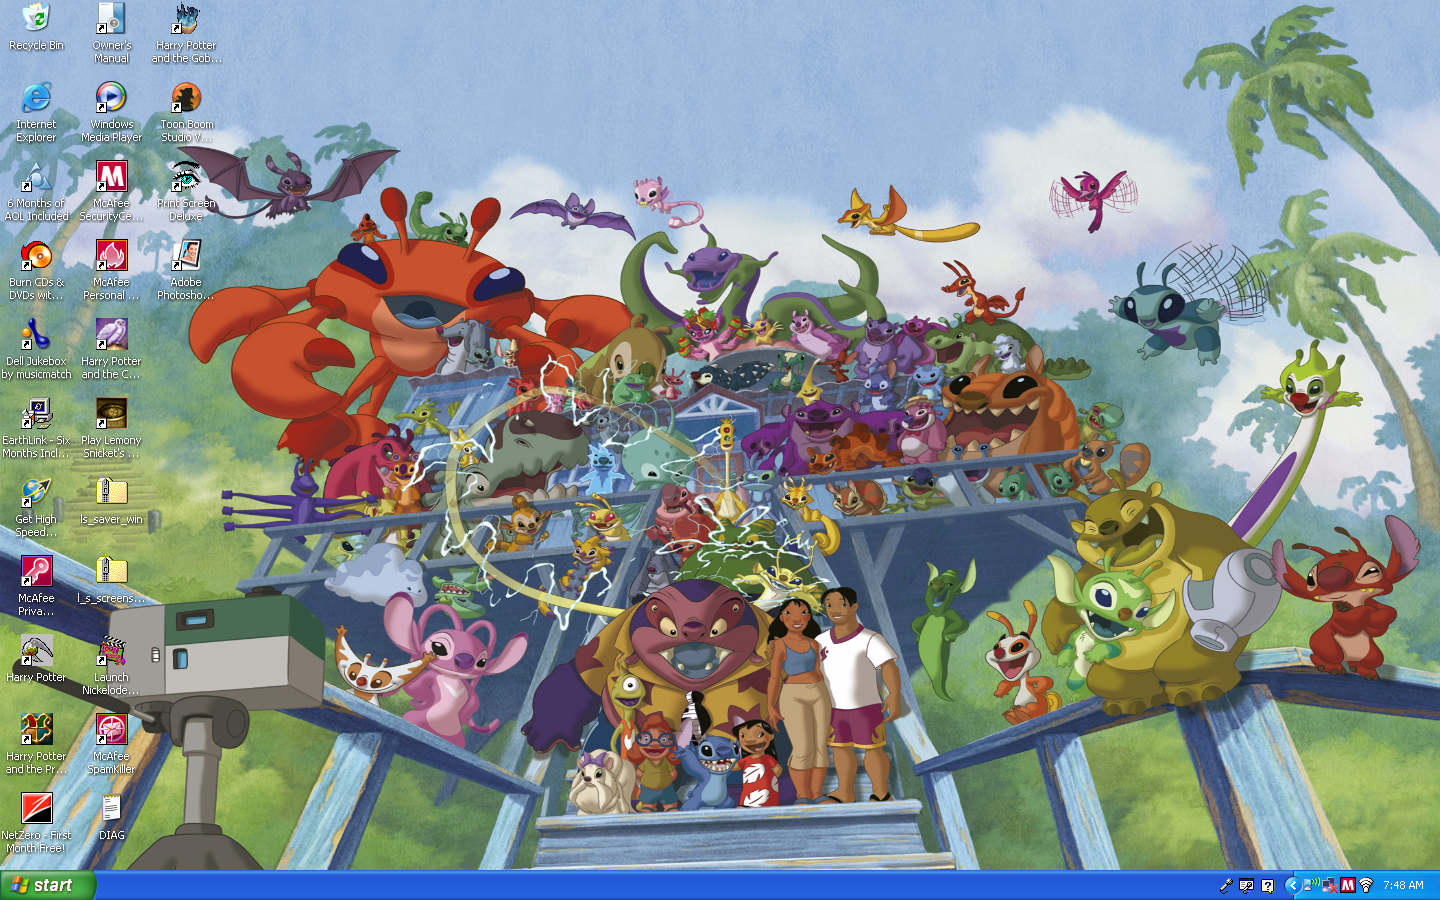 Lilo And Stitch Wallpapers 1920x1080 Full Hd 1080p Desktop